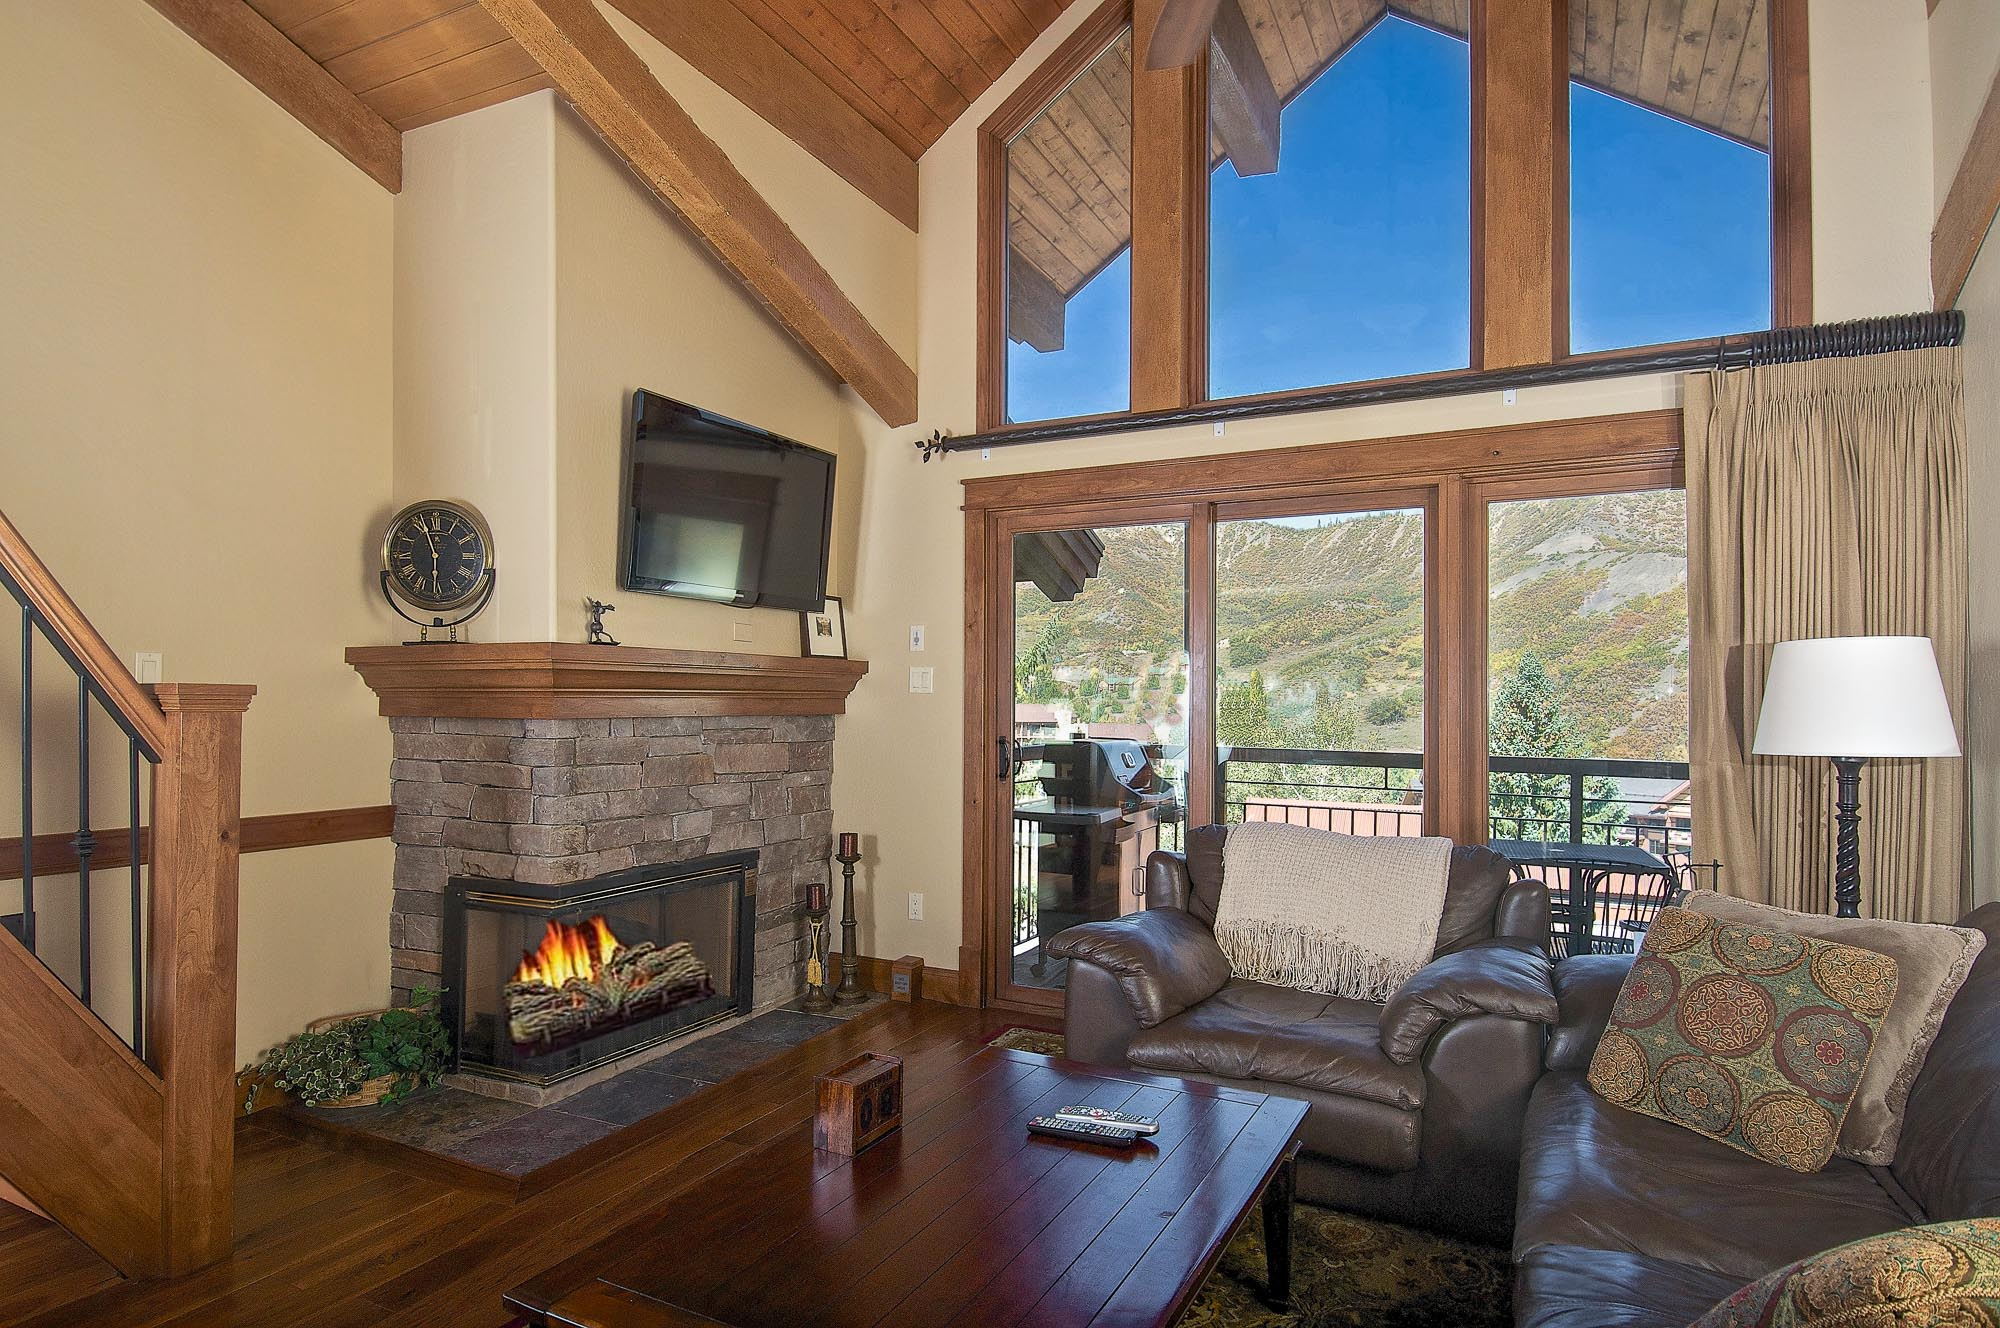 Copropriété pour l Vente à The Location You Have Been Looking For! 400 Wood Road, Unit 2302 Snowmass Village, Colorado, 81615 États-Unis